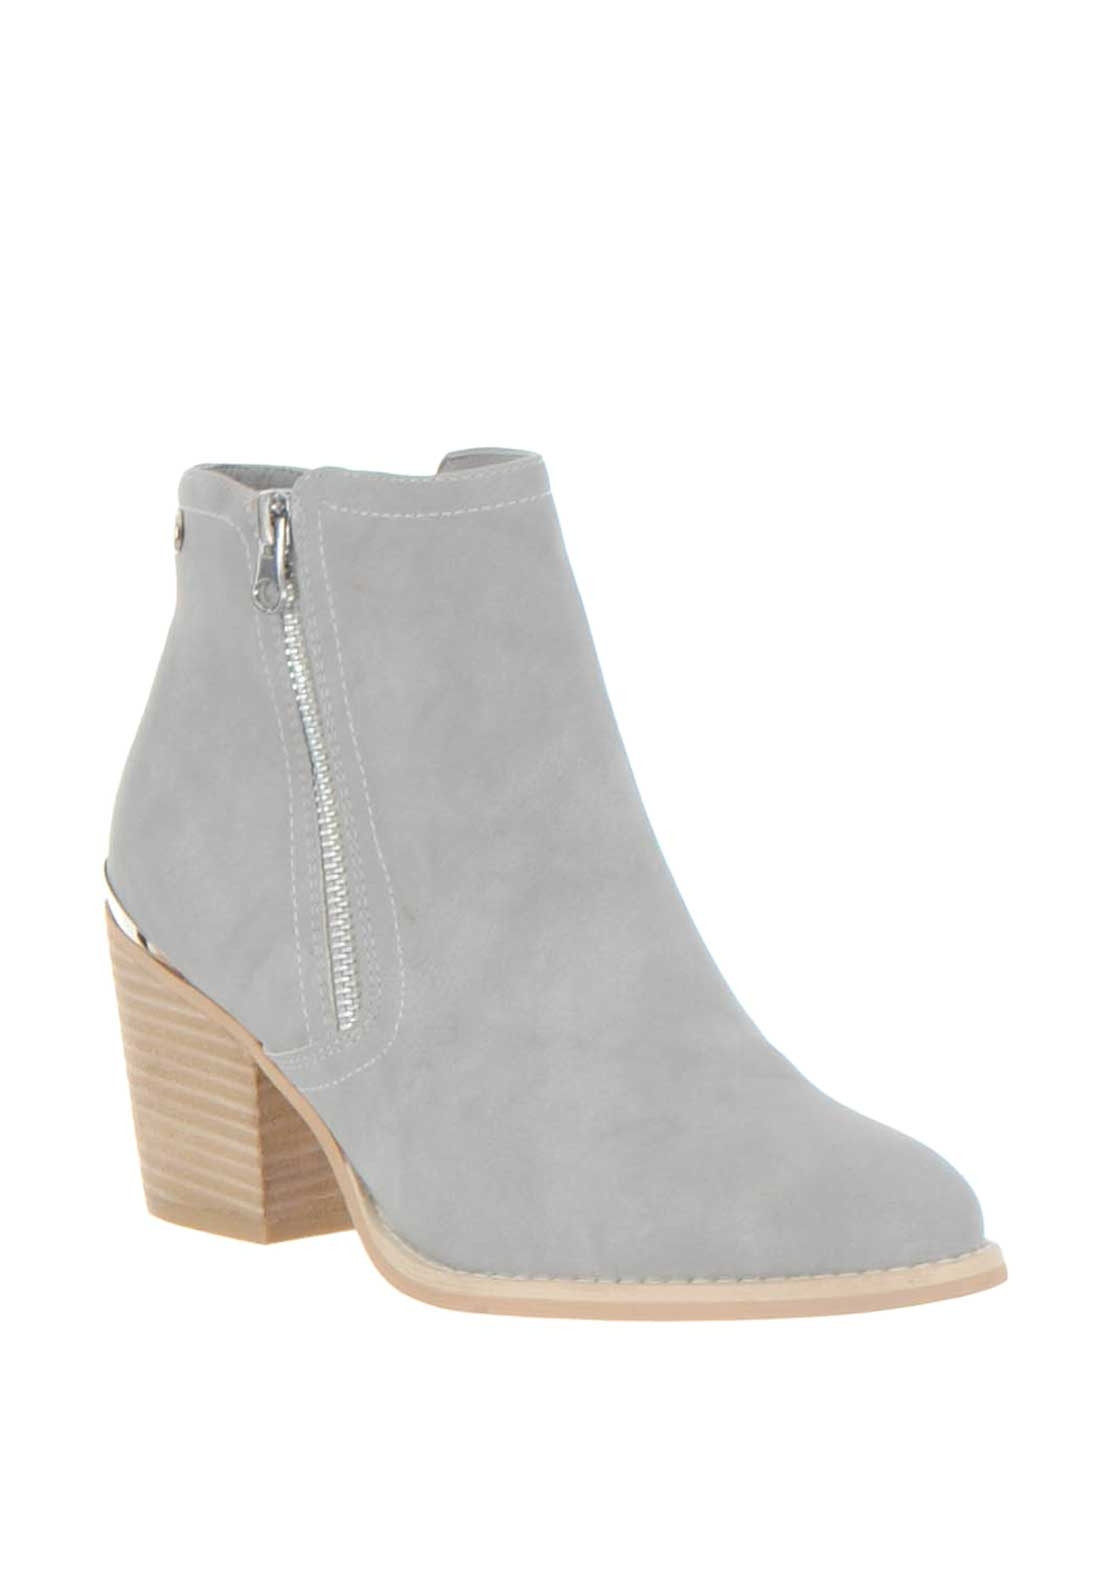 Xti Womens Zip Block Heel Ankle Boots, Grey